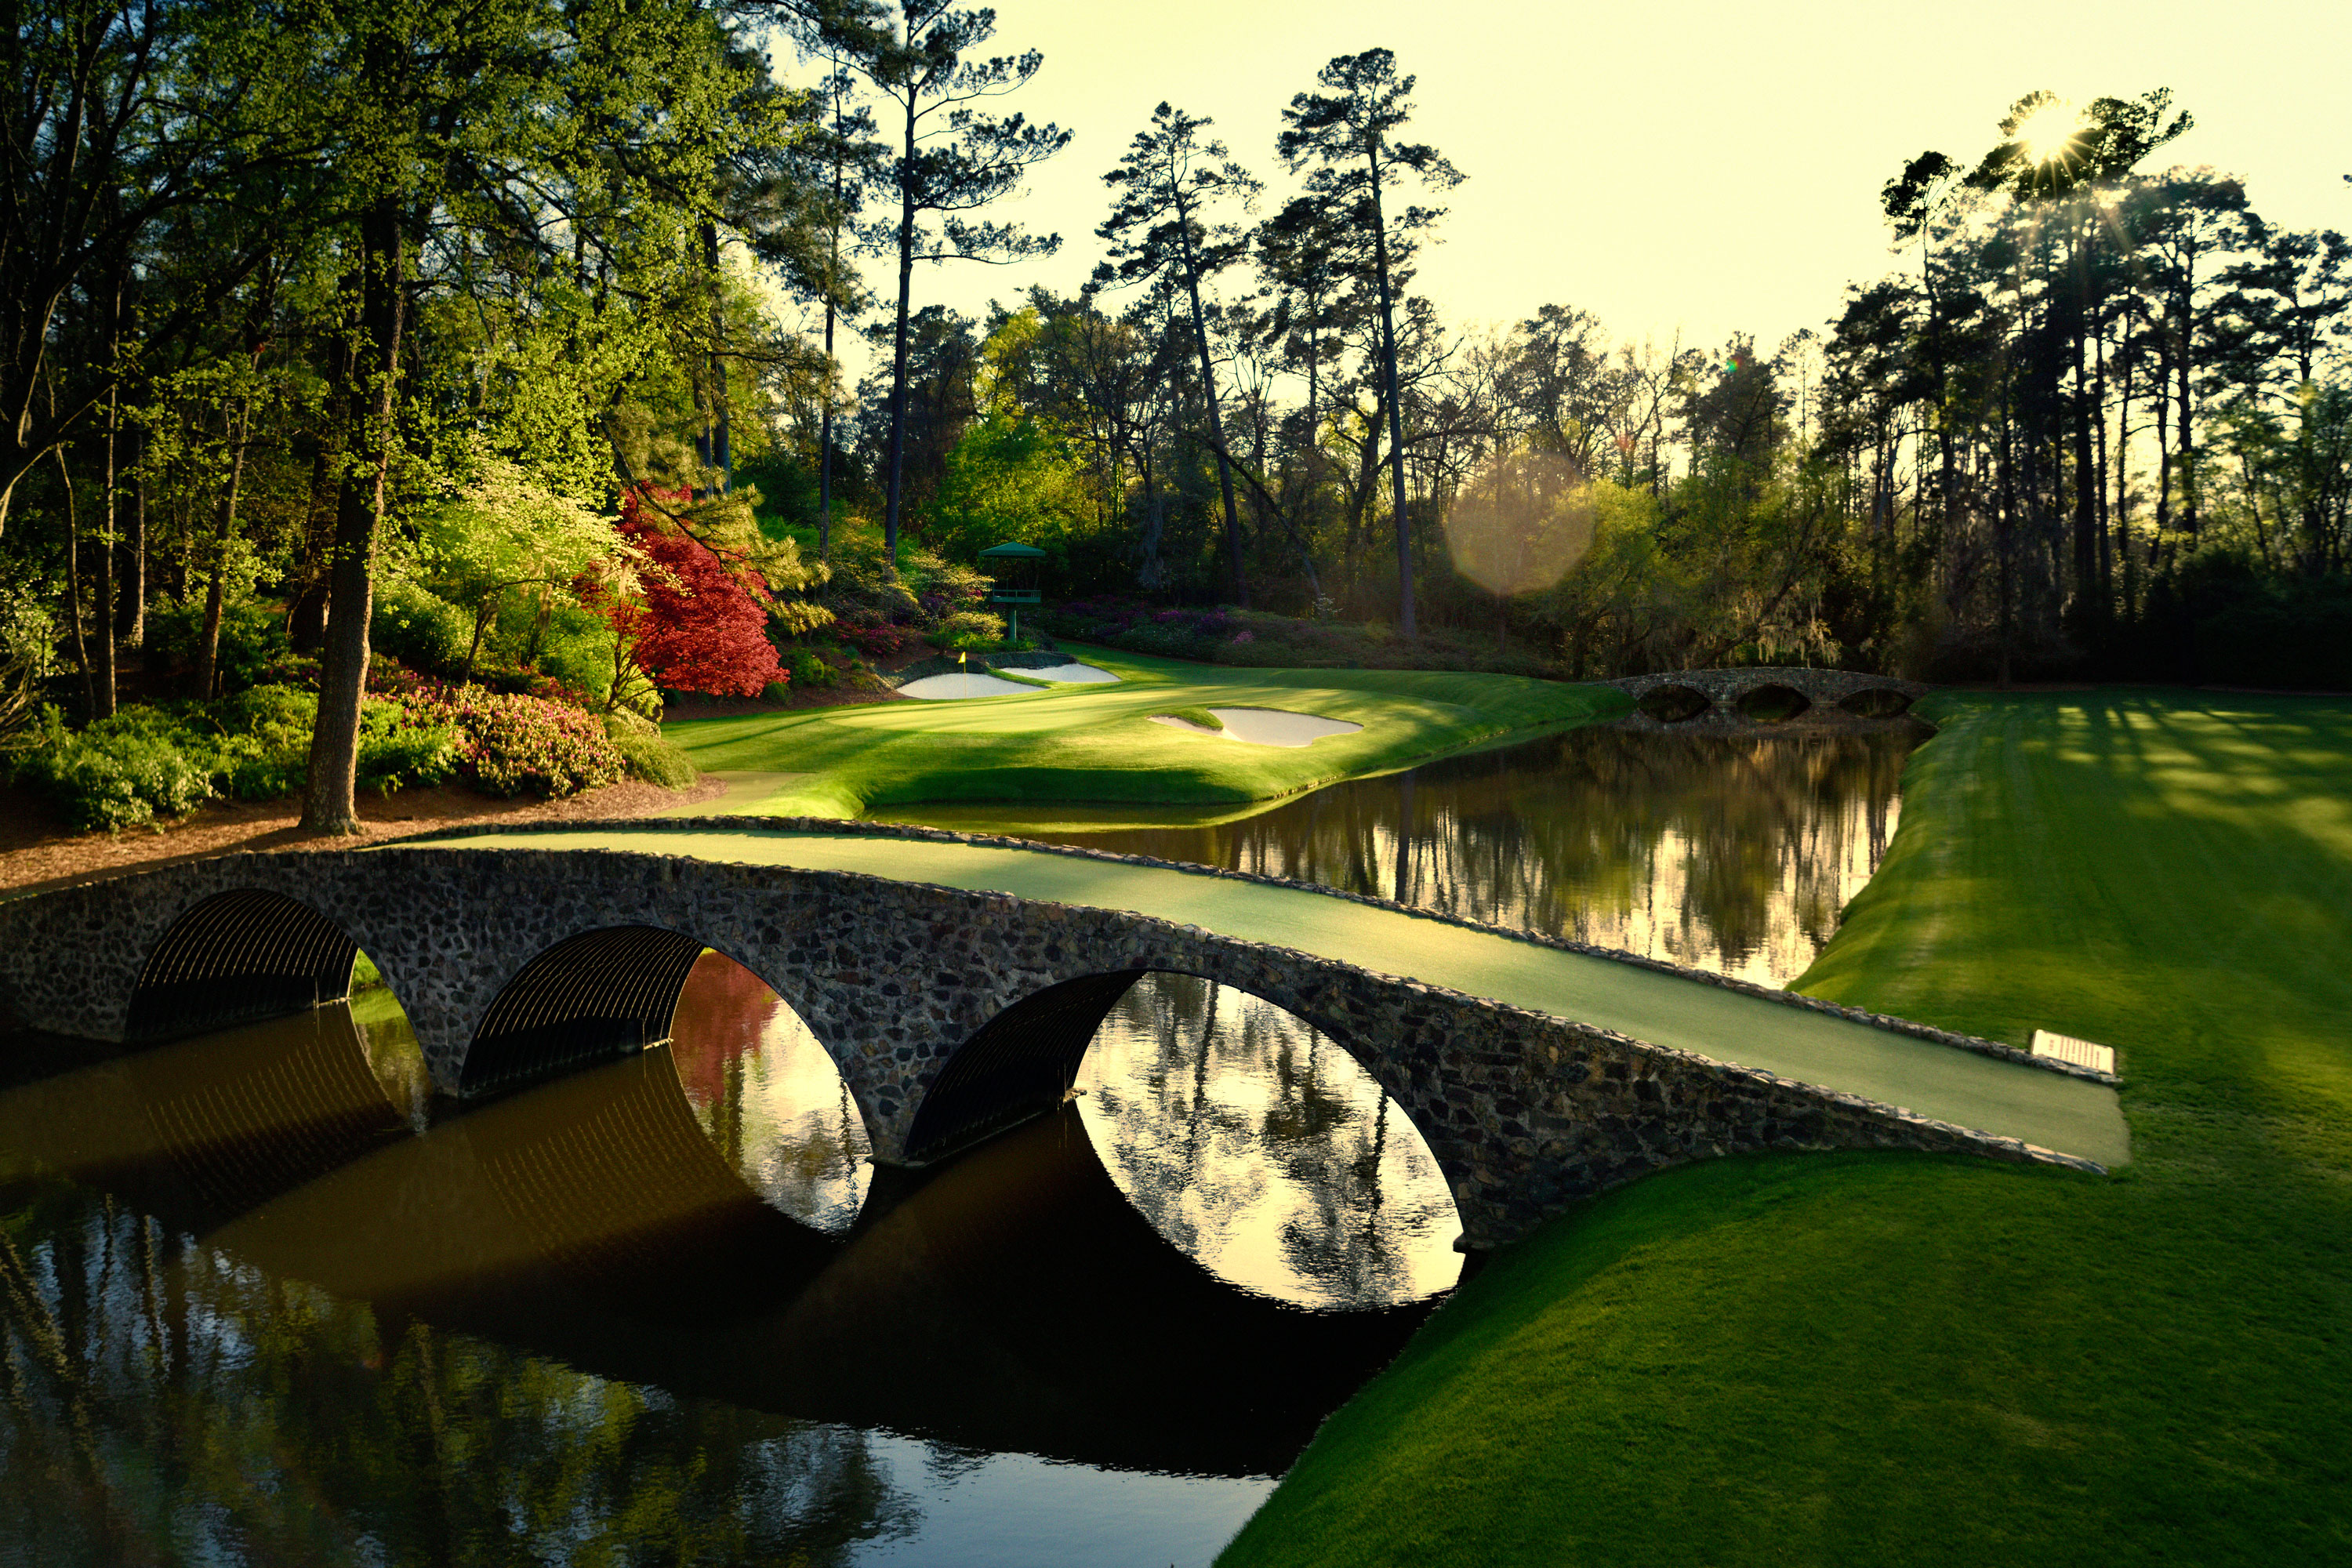 Masters 2021 How To Watch The Masters At Augusta National On Television And Streaming Online Golf News And Tour Information Golfdigest Com